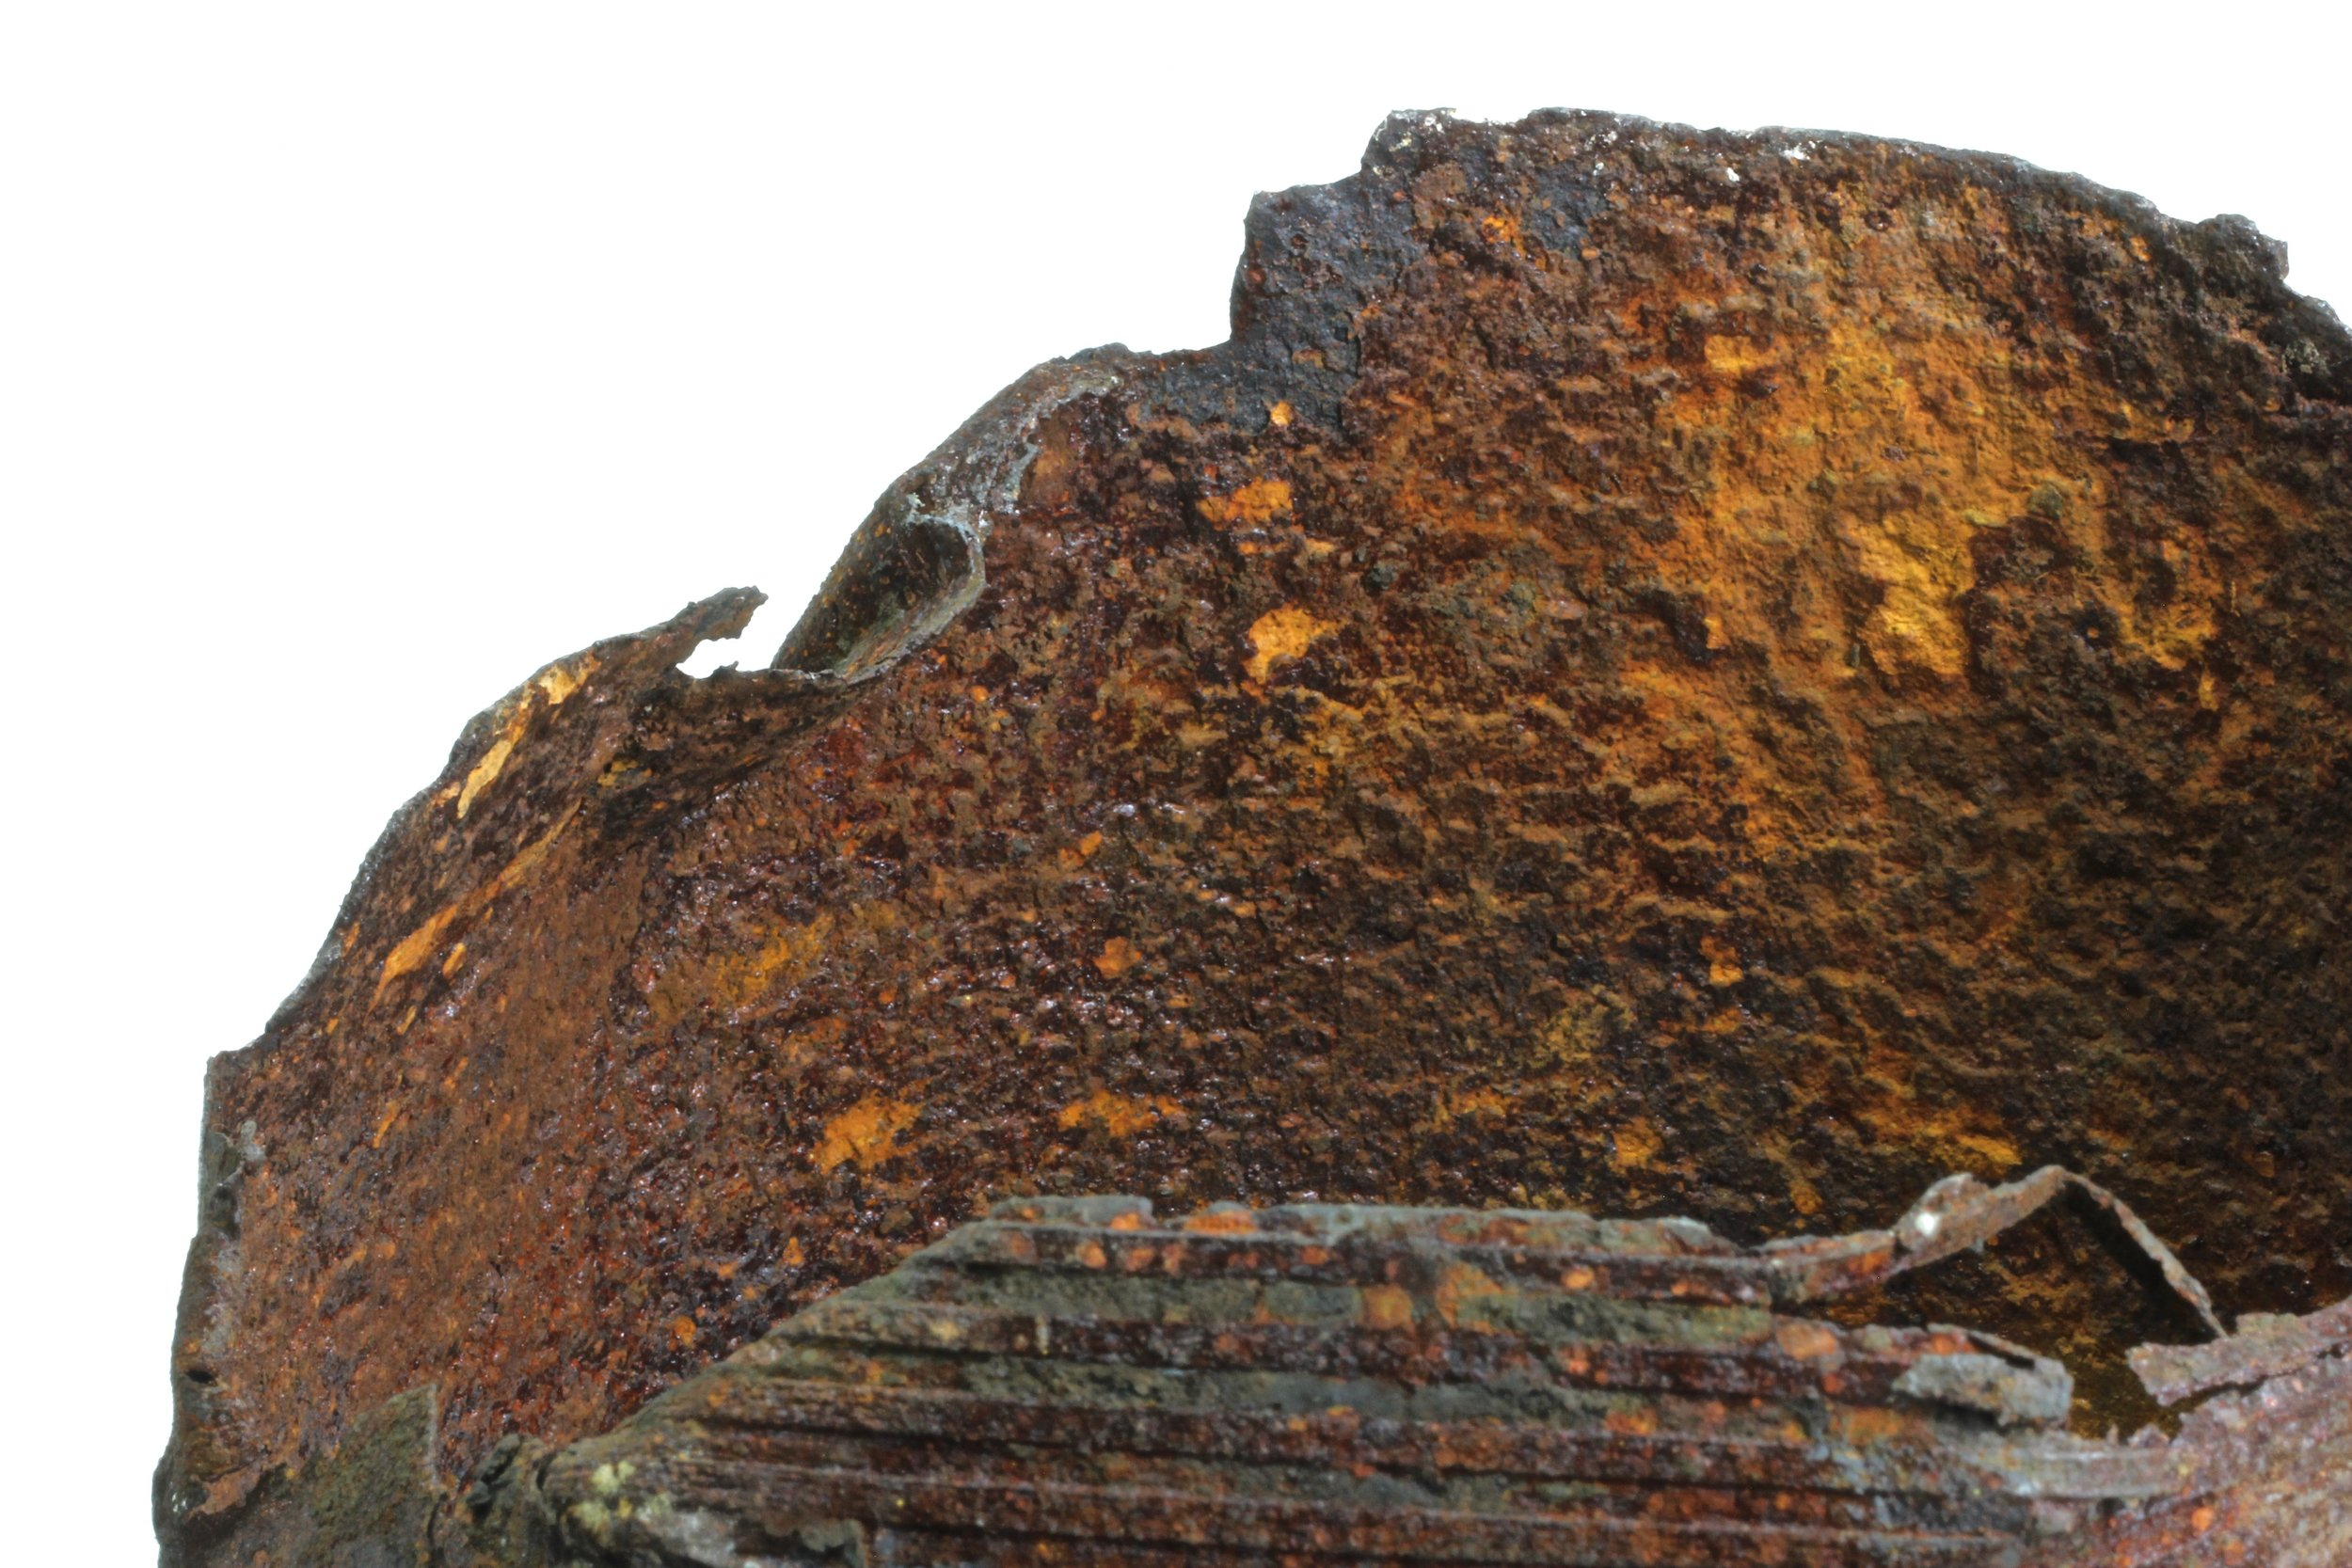 Salt Water Disposal Well Casing - Casing removed from a disposal well suffered extensive wall thickness loss. The internal wall and buttress thread forms were reduced to paper-thin sections.